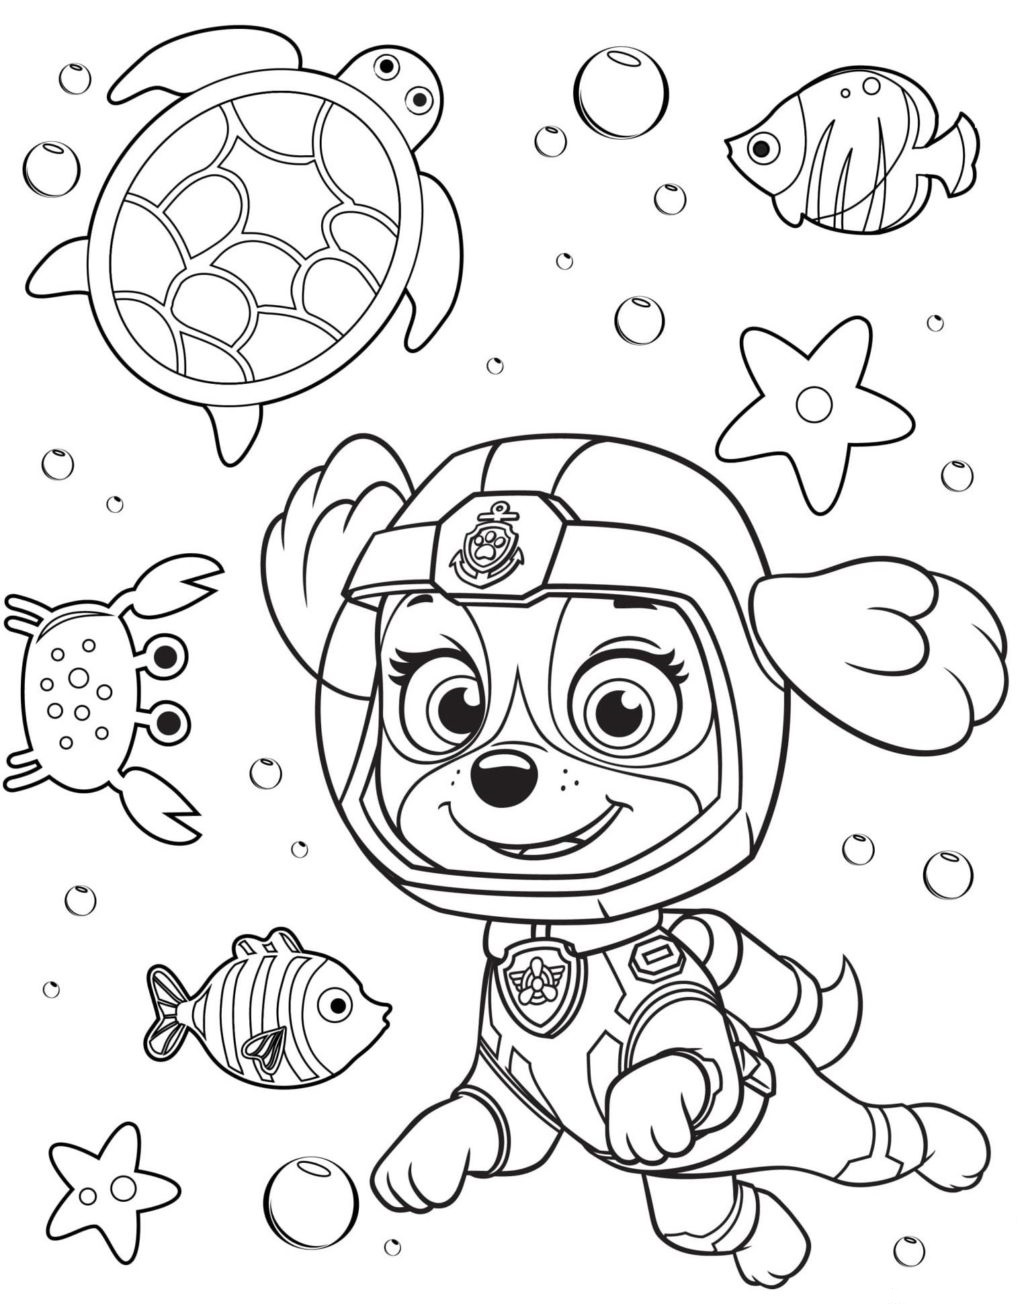 25 Best paw patrol images | Paw patrol, Paw patrol coloring pages ... | 1304x1024